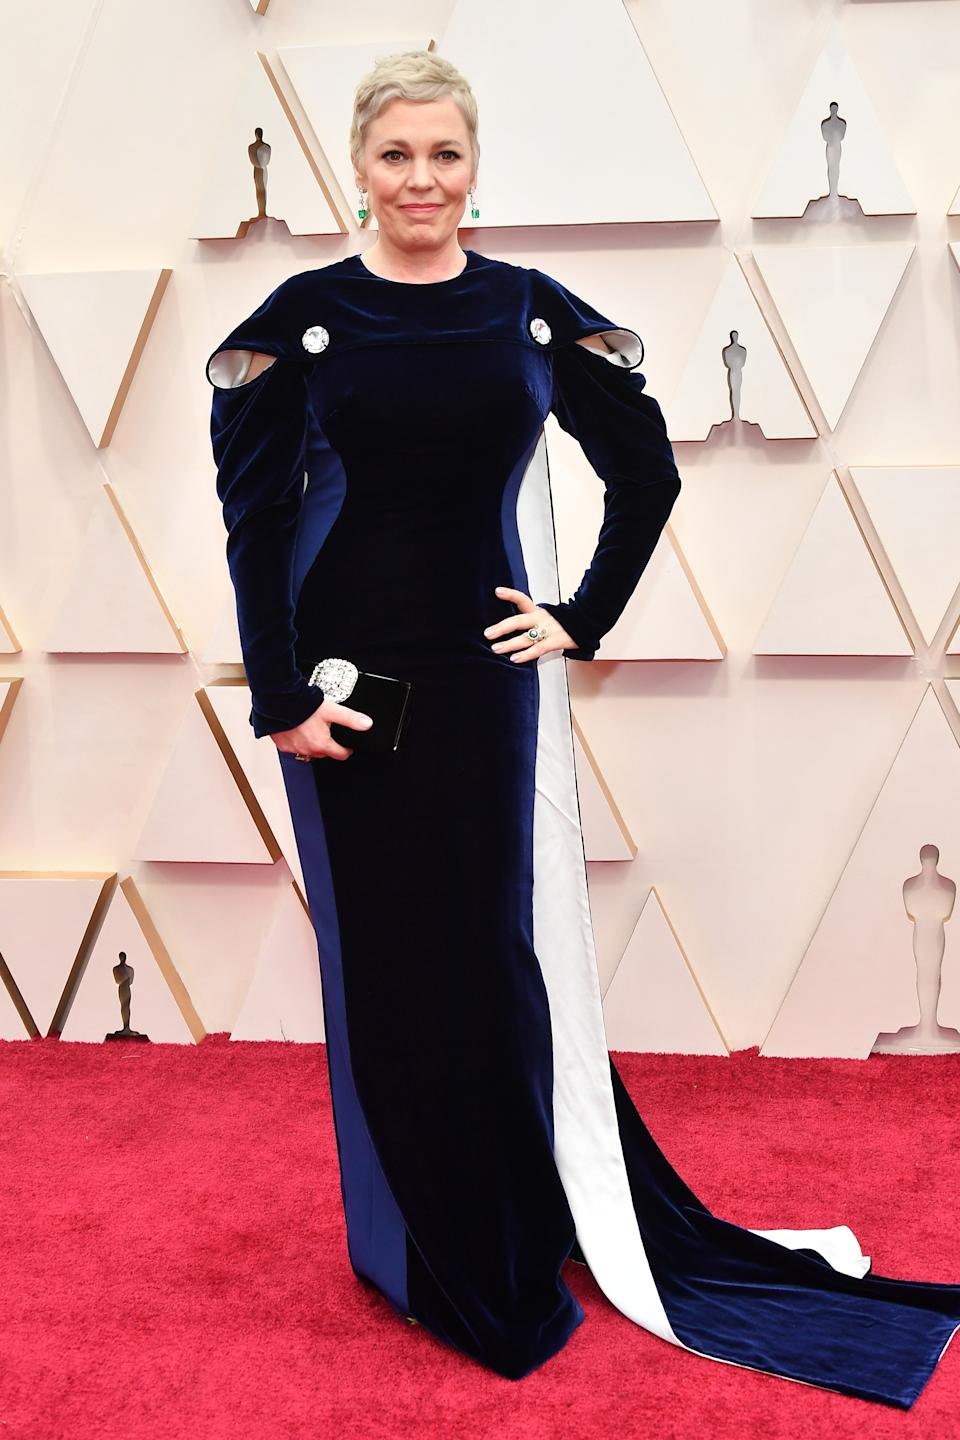 Last year's Best Actress winner kept warm in a sleeved Stella McCartney gown with structured shoulder detailing.